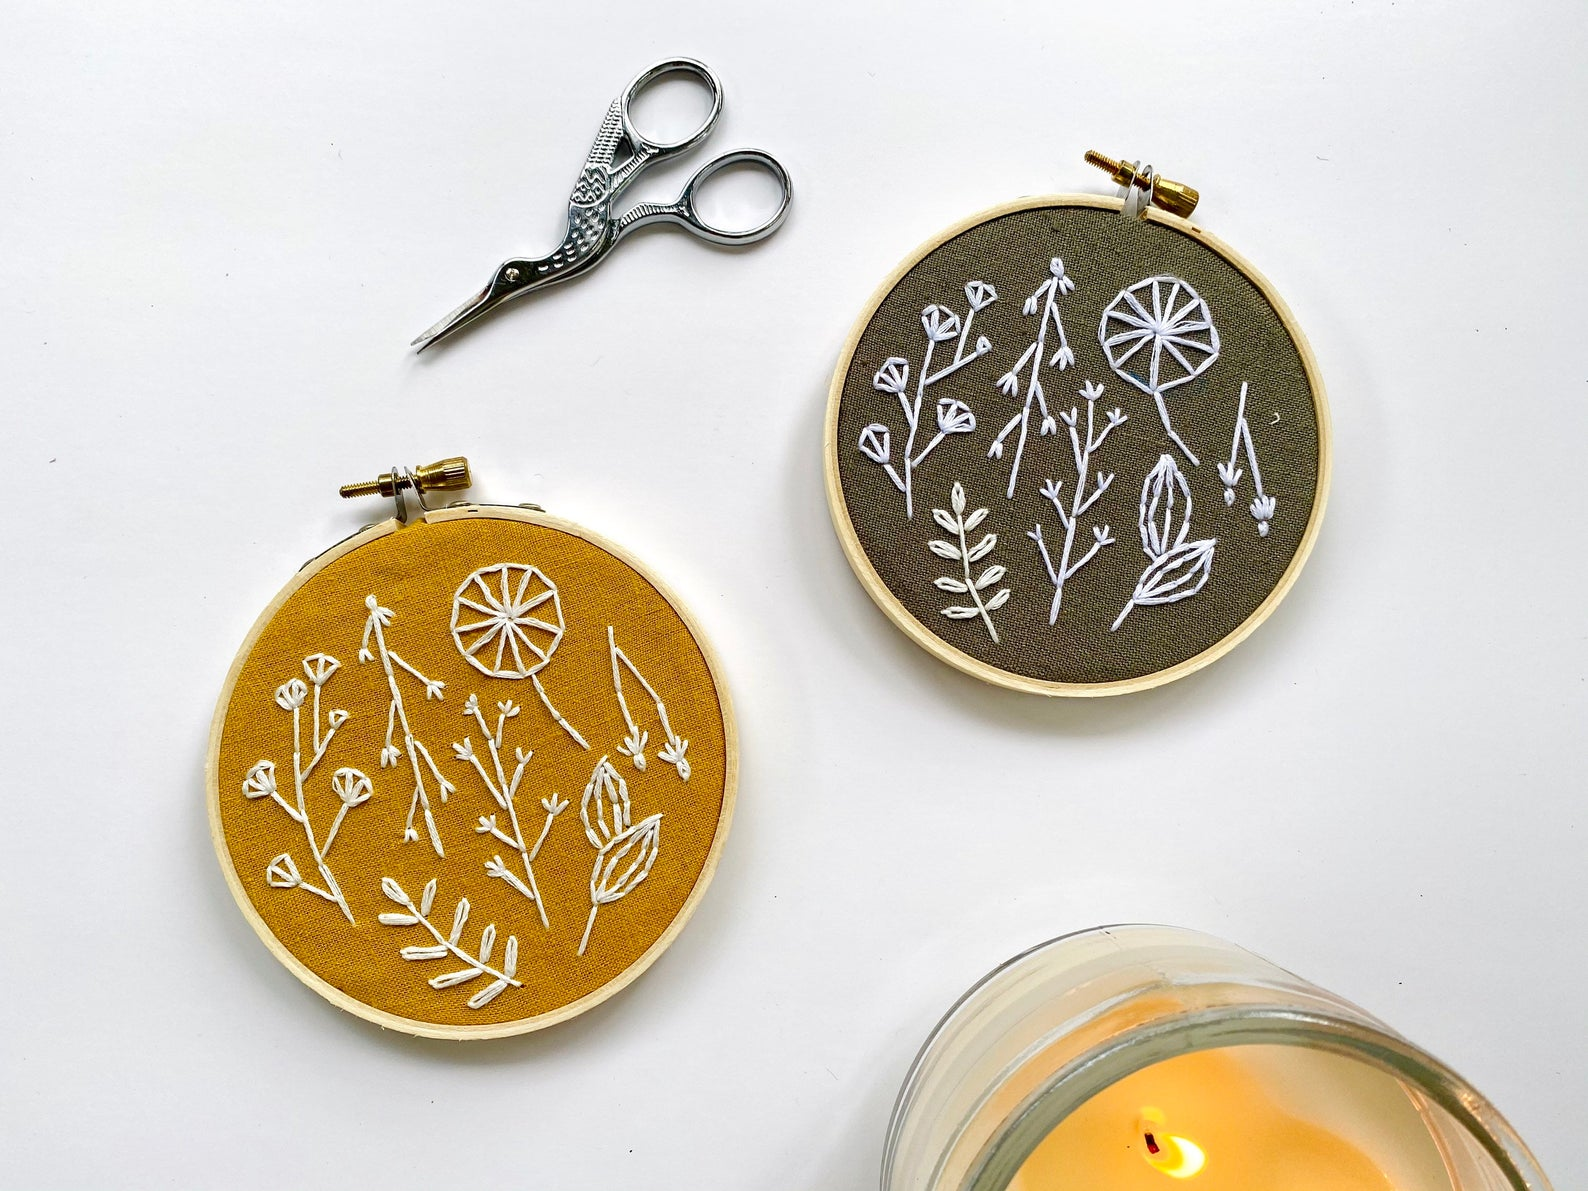 two finished embroidery hoops with embroidery scissors lying next and a burning candle